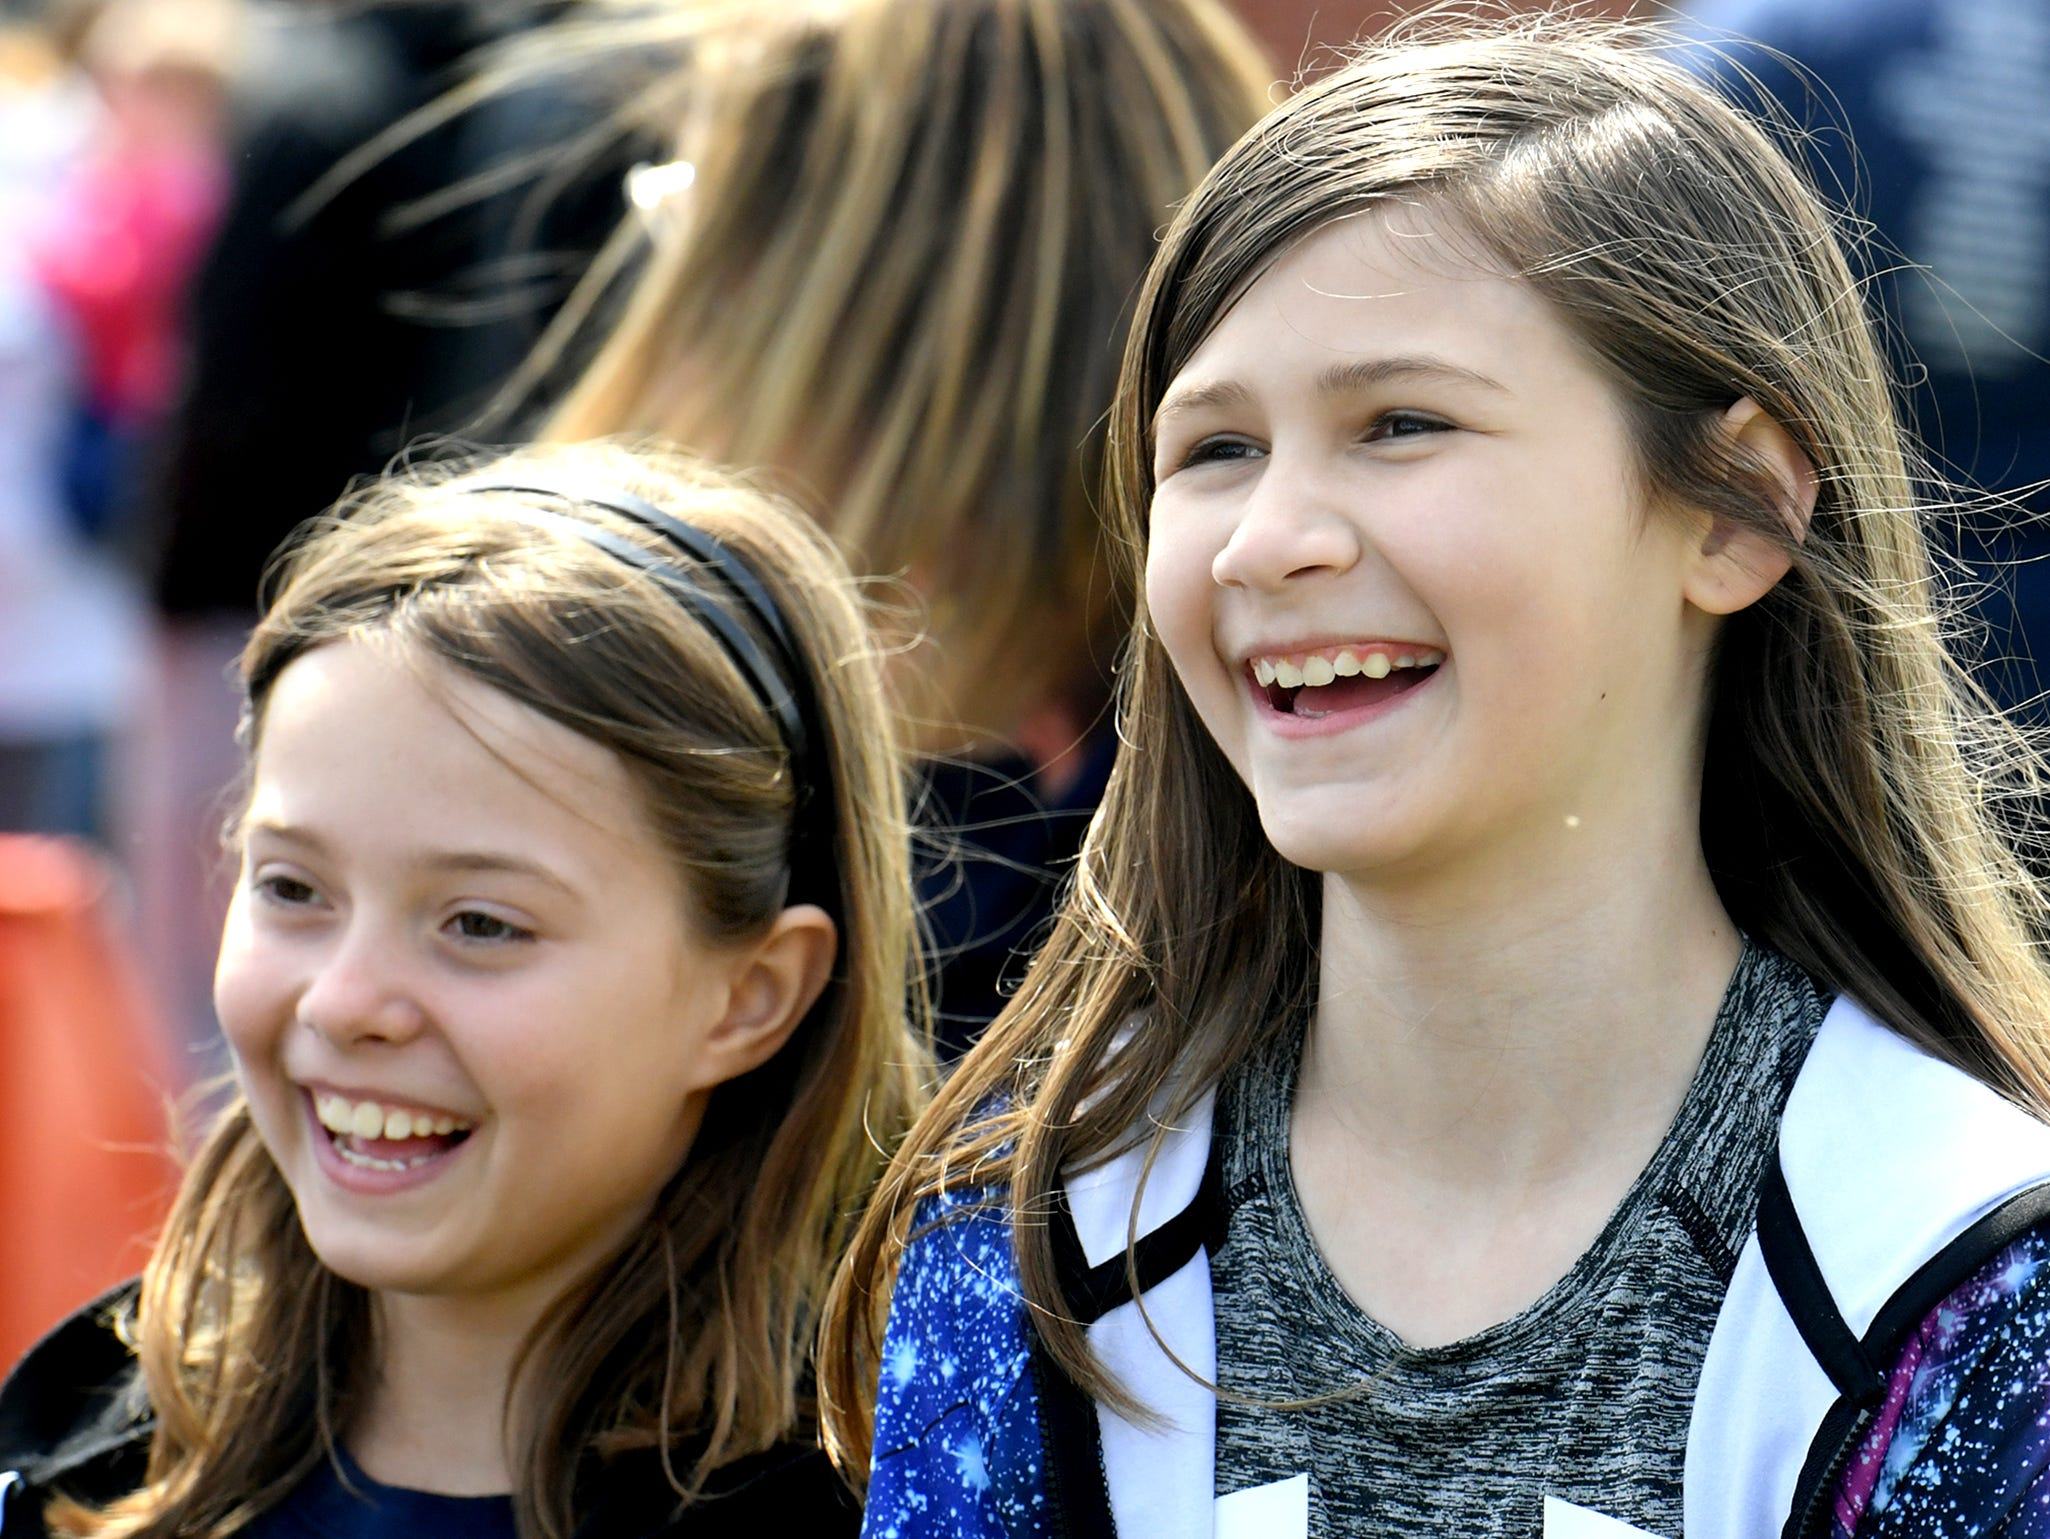 Spring Grove Elementary School fourth graders Kenley Lellers, left, and Emmye Schuman watch a demonstration during the district's 6th Annual Rollin' Tractor Show Thursday, April 11, 2019, presented by the Future Farmers Club. Alumni and area residents brought farm equipment to display with the goal of acquainting students with the agriculture industry. The show, which included a parade of equipment, visited the intermediate and elementary schools.Bill Kalina photo